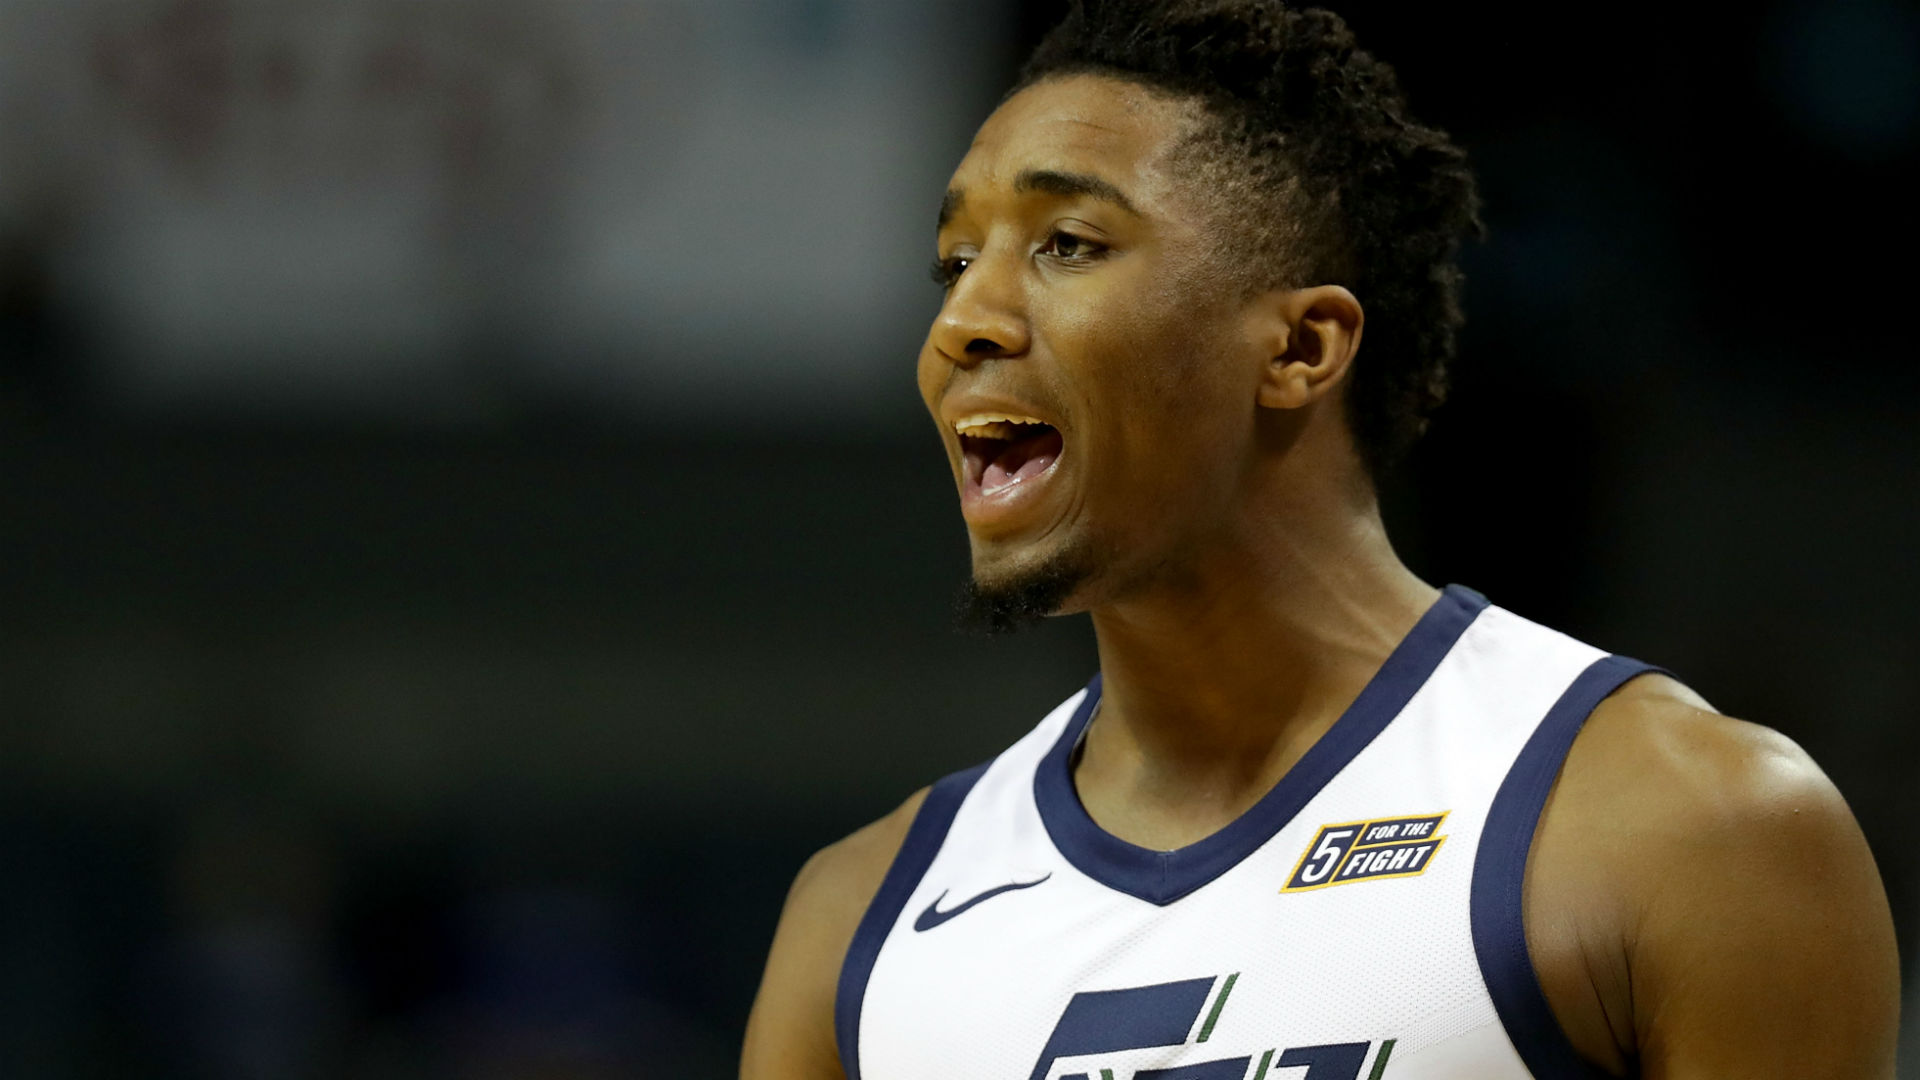 WATCH: Jazz guard Donovan Mitchell invites young fan on court to help in warmups